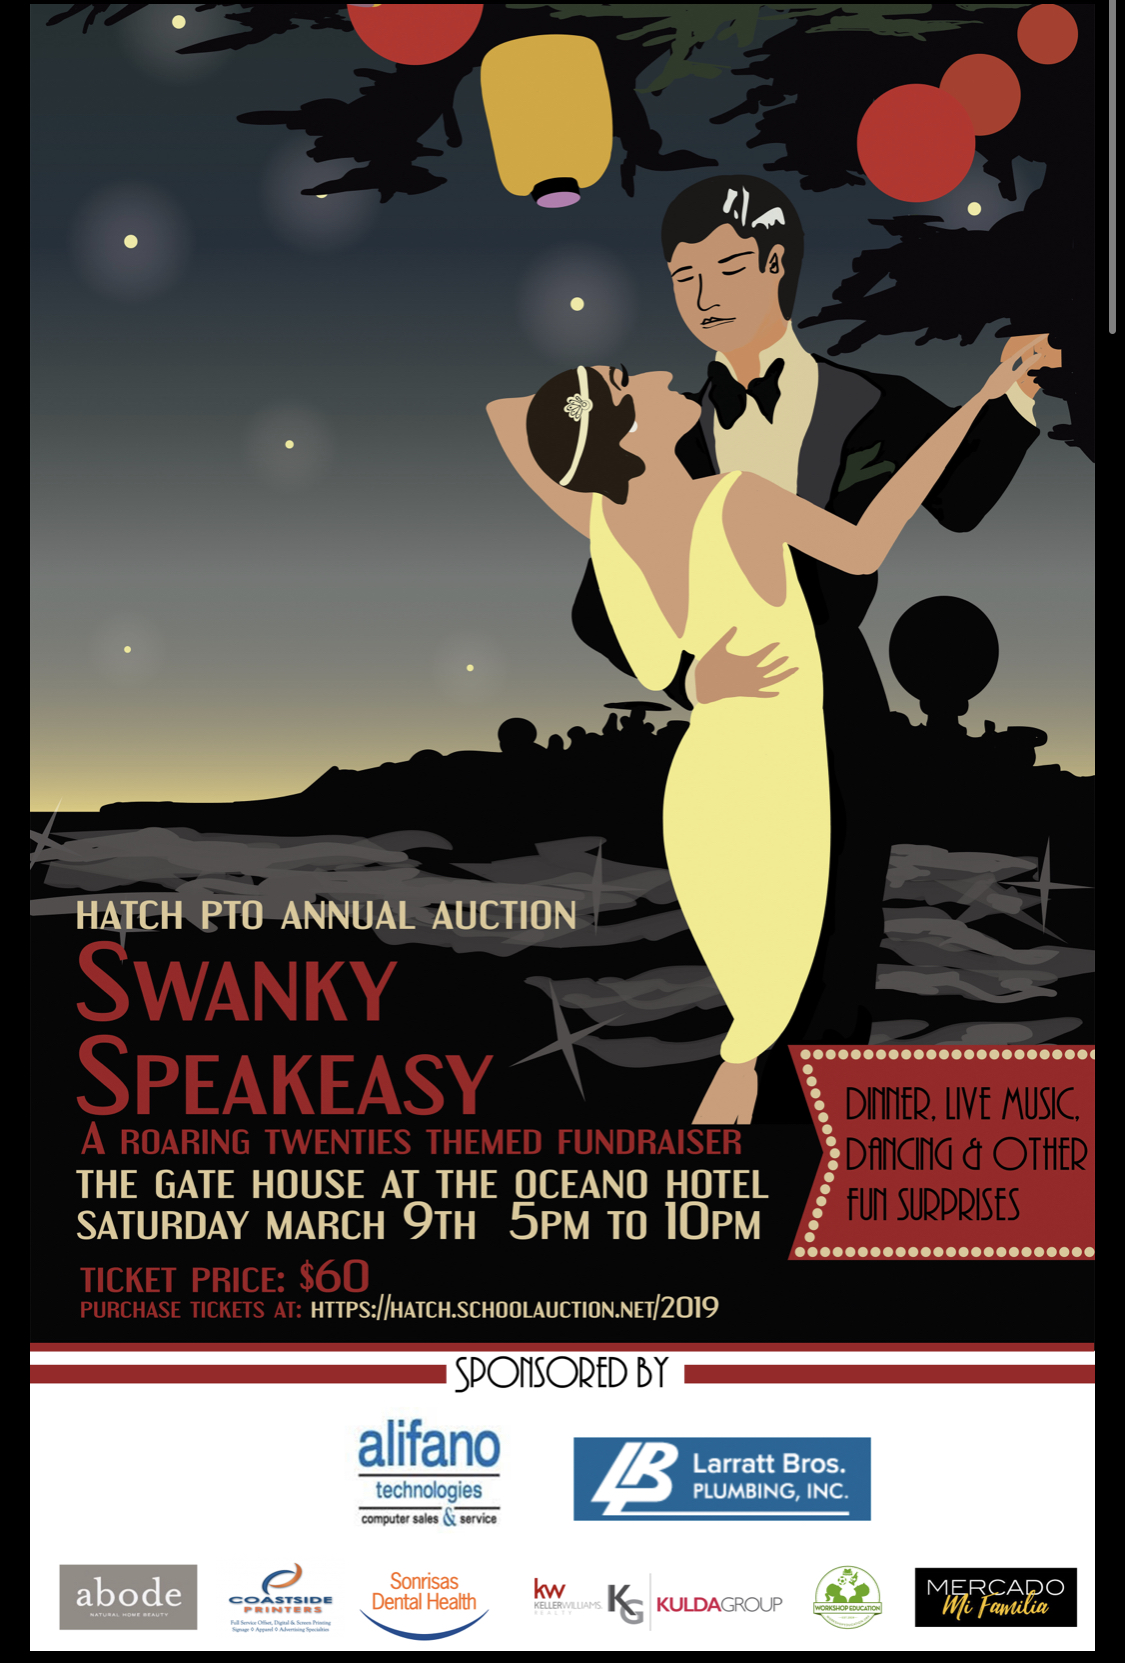 HATCH ELEMENTARY AUCTION - Swanky Speakeasy - Coastside Buzz